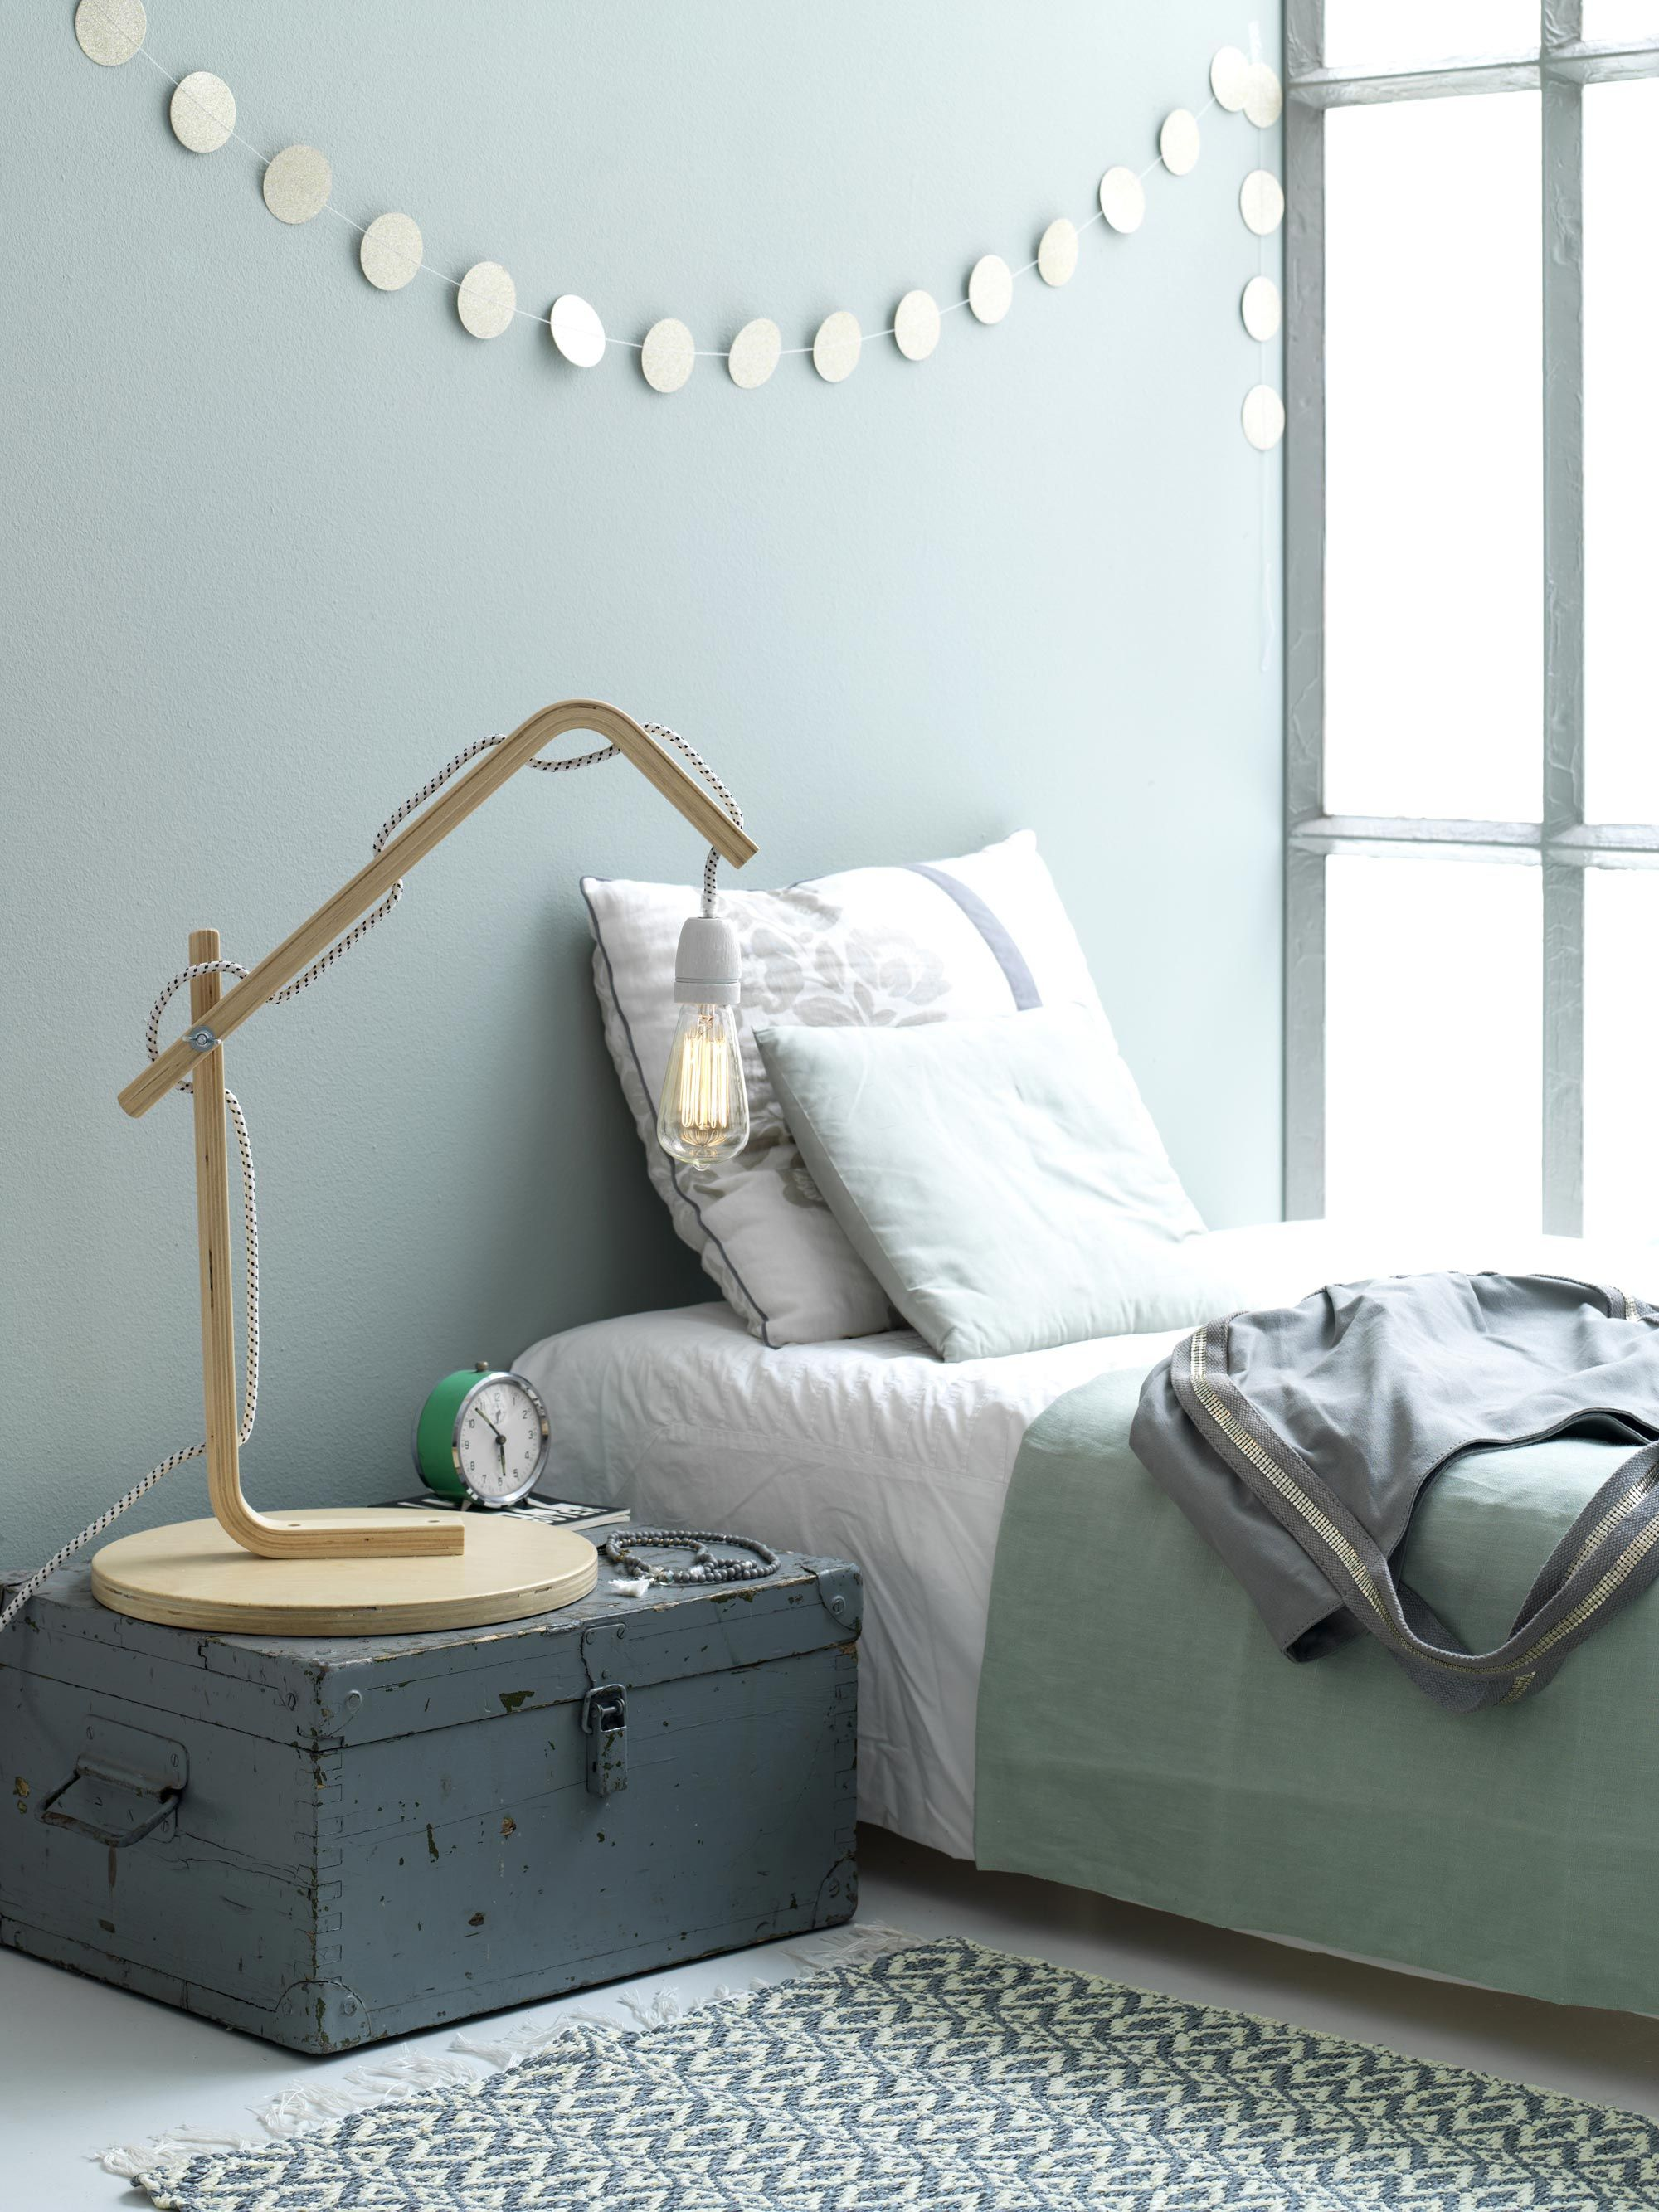 I Think The Lamp Is Made With An Ikea Stool What You